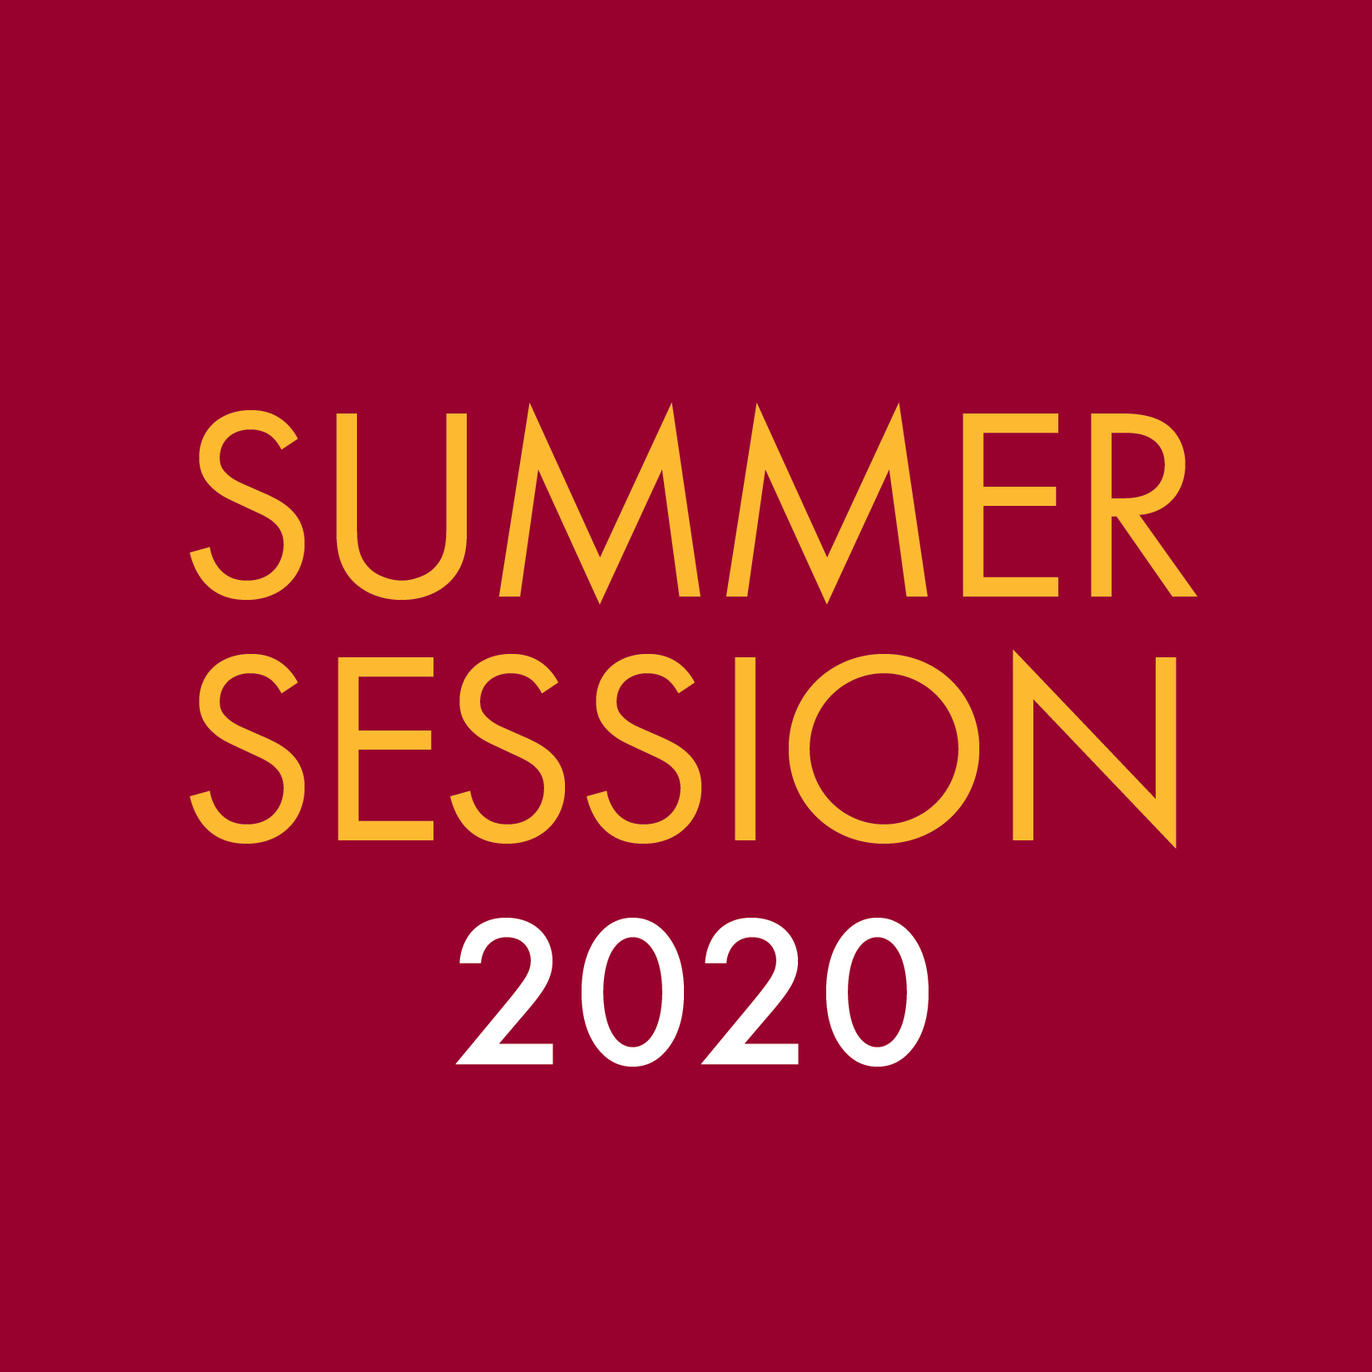 Summer Session 2020